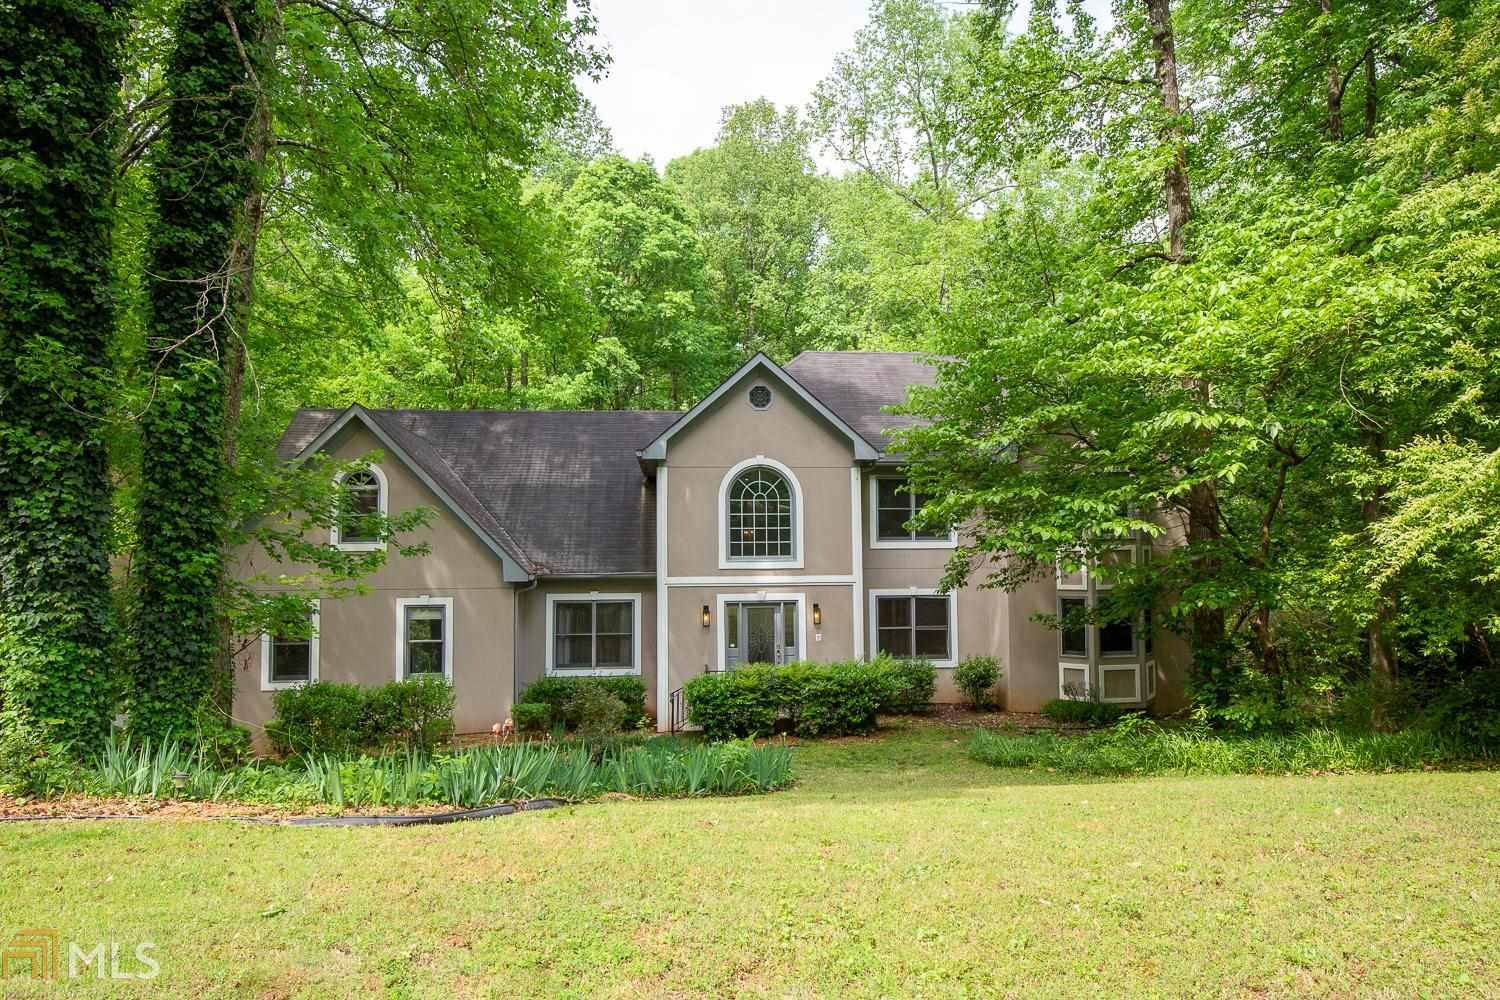 4645 Riversound Dr, Snellville, Georgia 30039, 5 Bedrooms Bedrooms, ,6 BathroomsBathrooms,Single Family,For Sale,4645 Riversound Dr,2,8970478